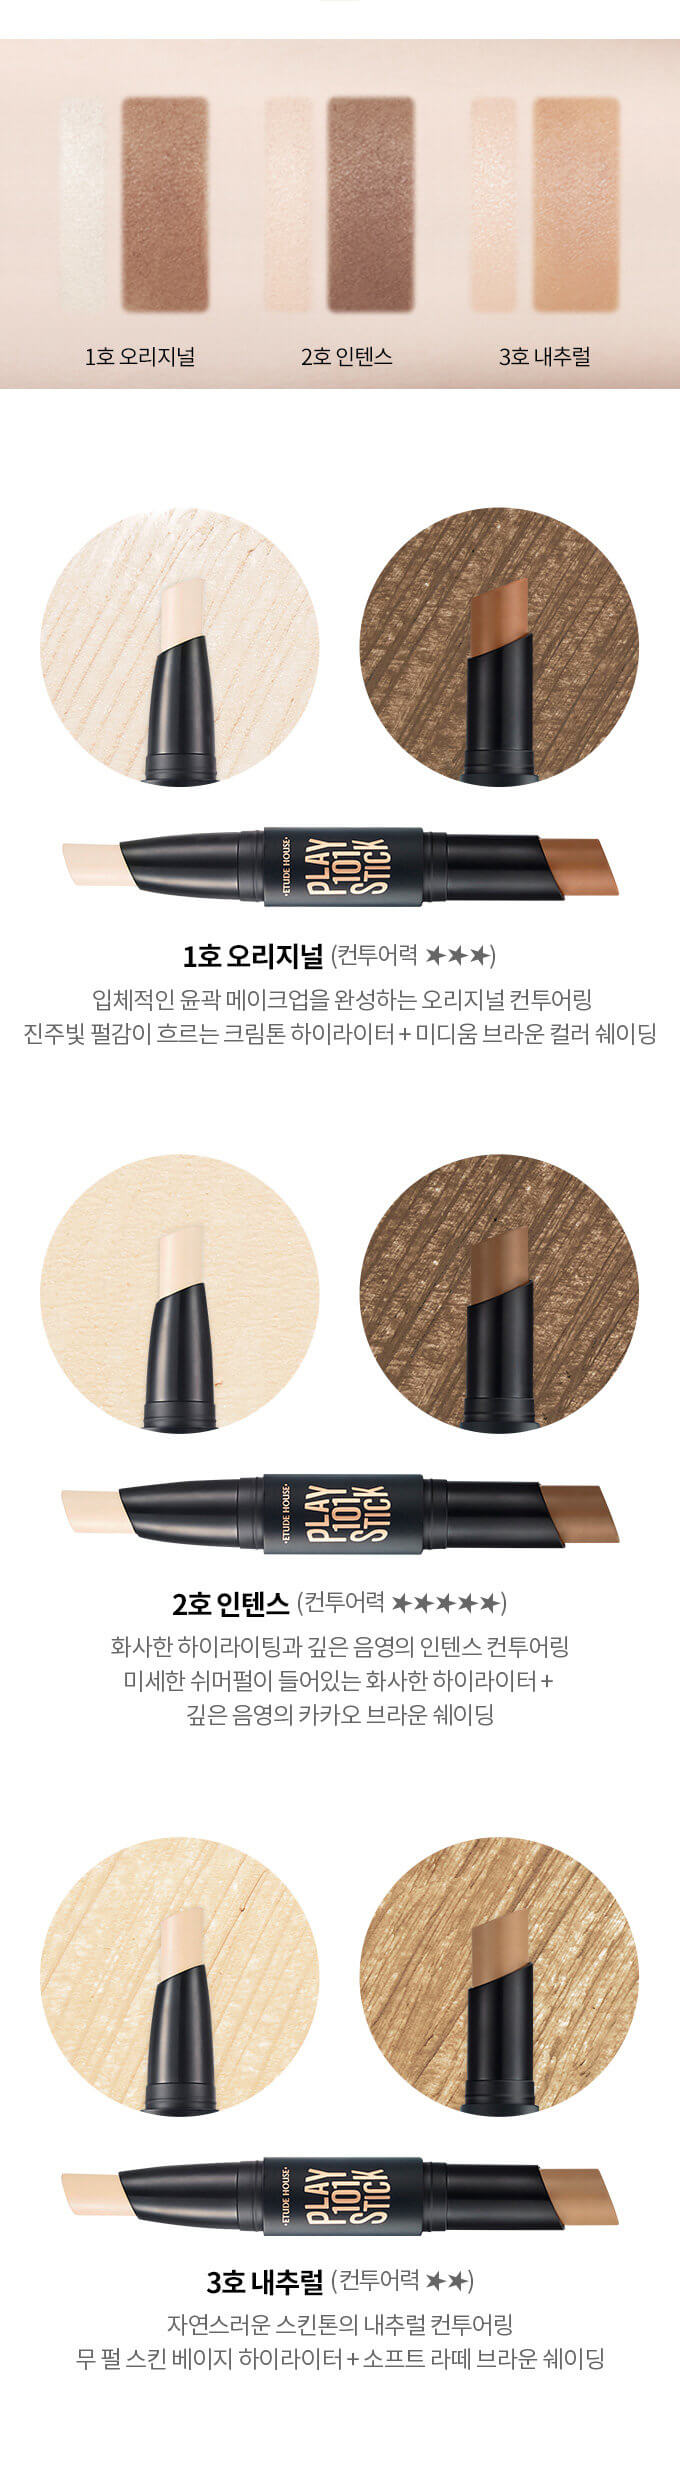 Etude House Play 101 Stick Contour Duo 2